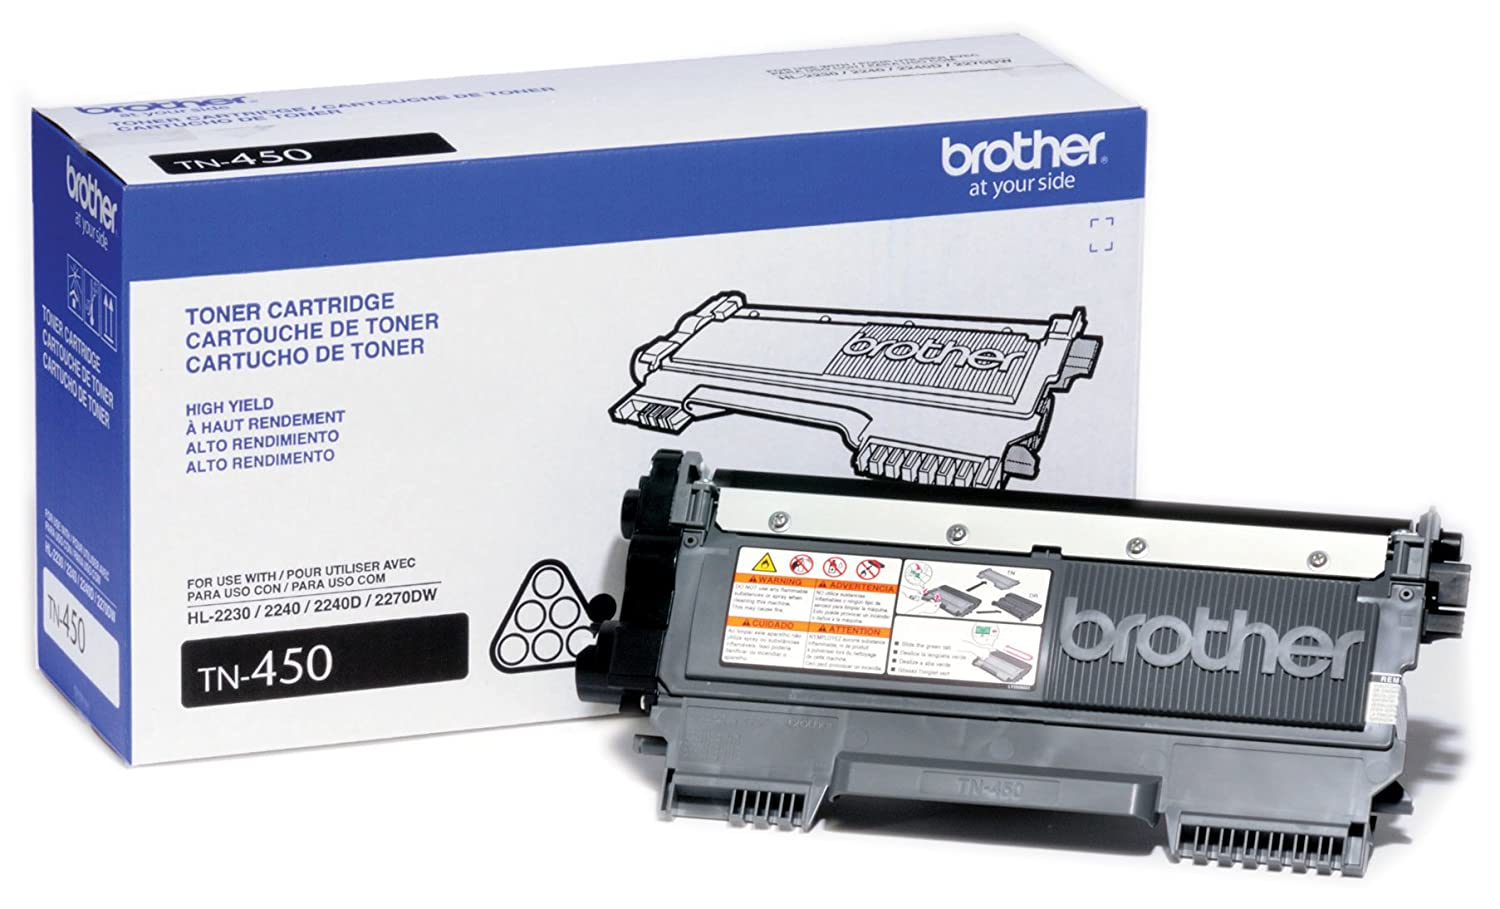 BROTHER TN450 DRIVER FOR WINDOWS